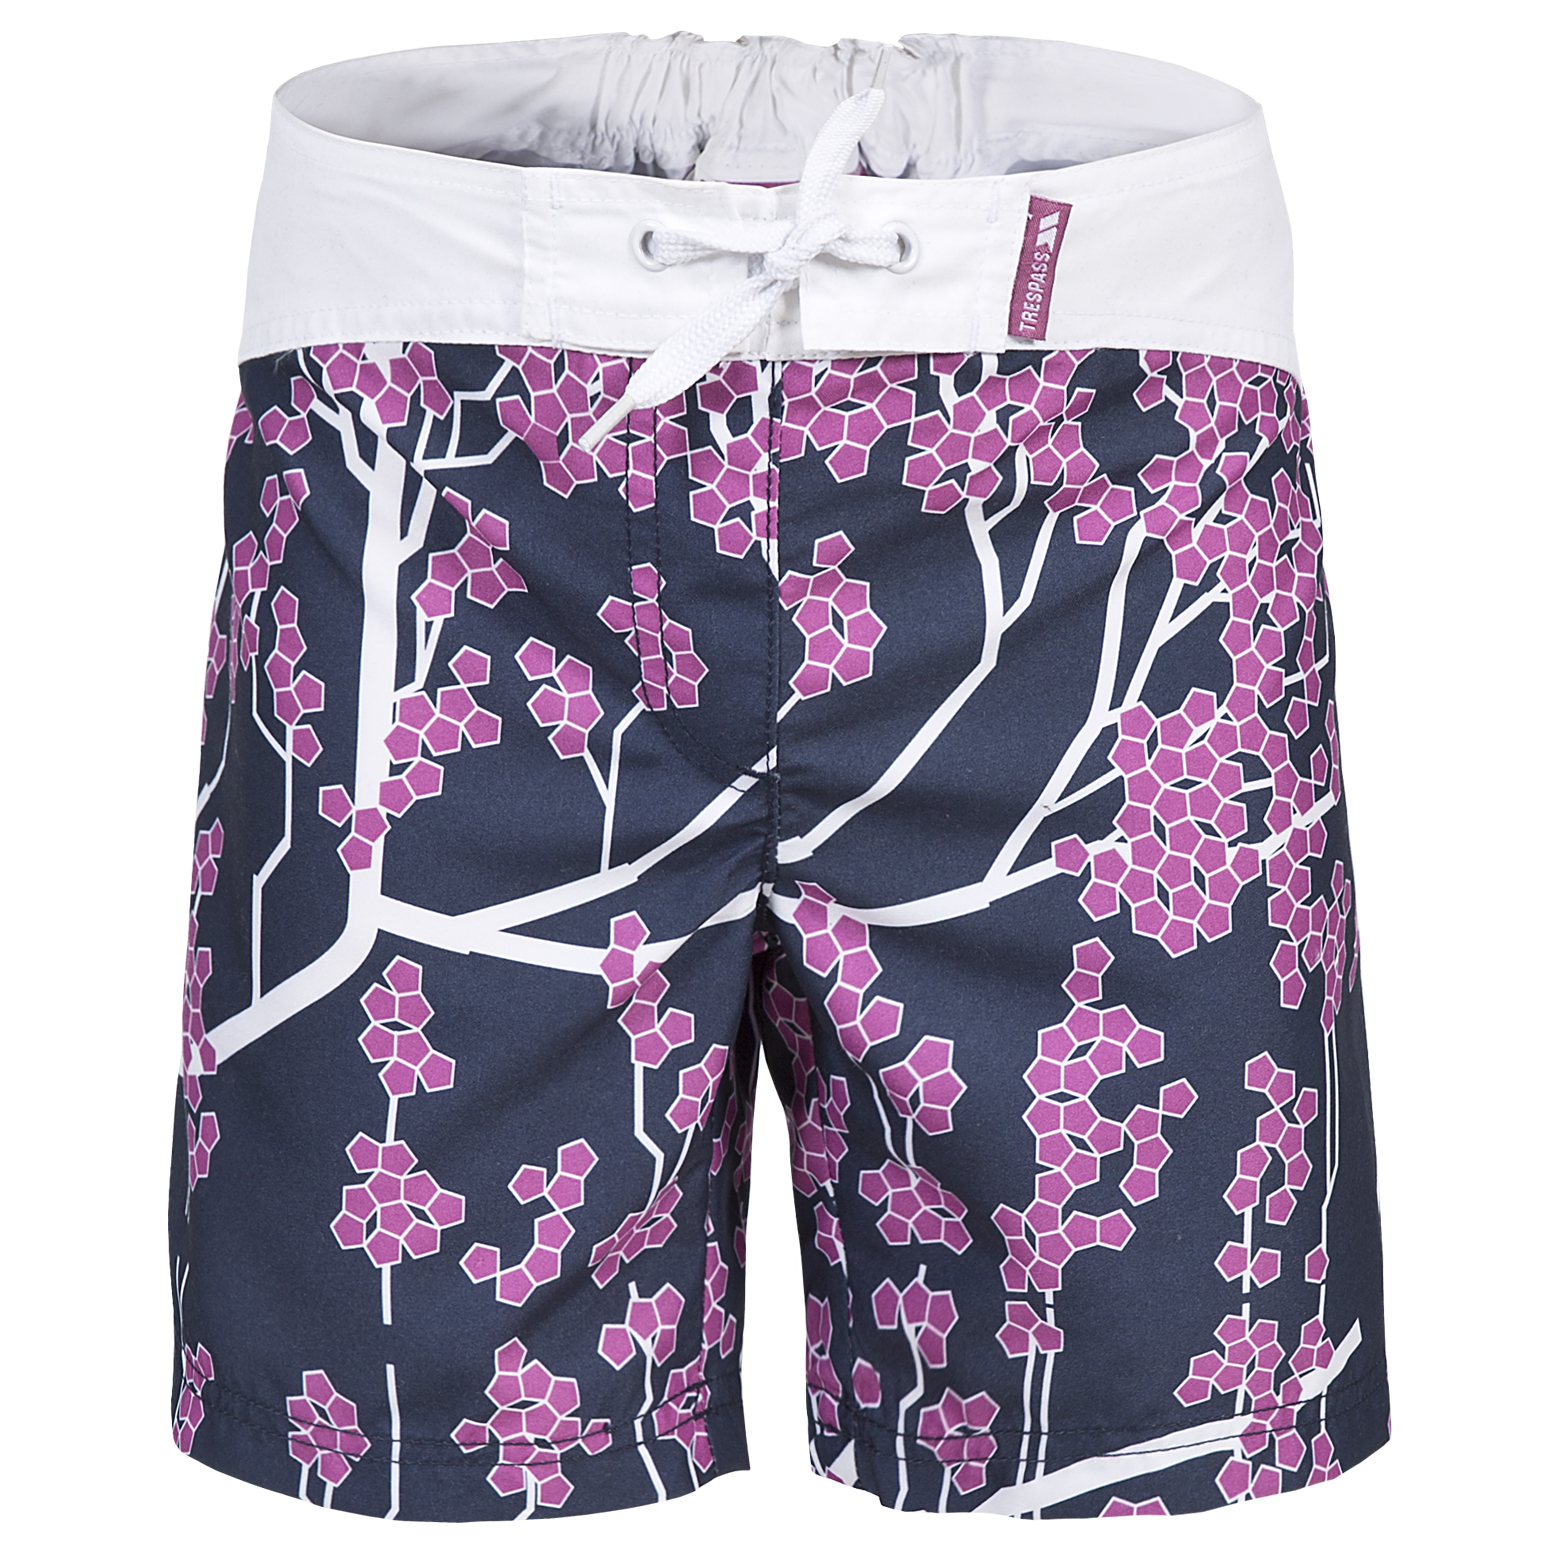 Trespass-Mabel-Girls-White-Shorts-Floral-Print-Summer-Clothes thumbnail 2